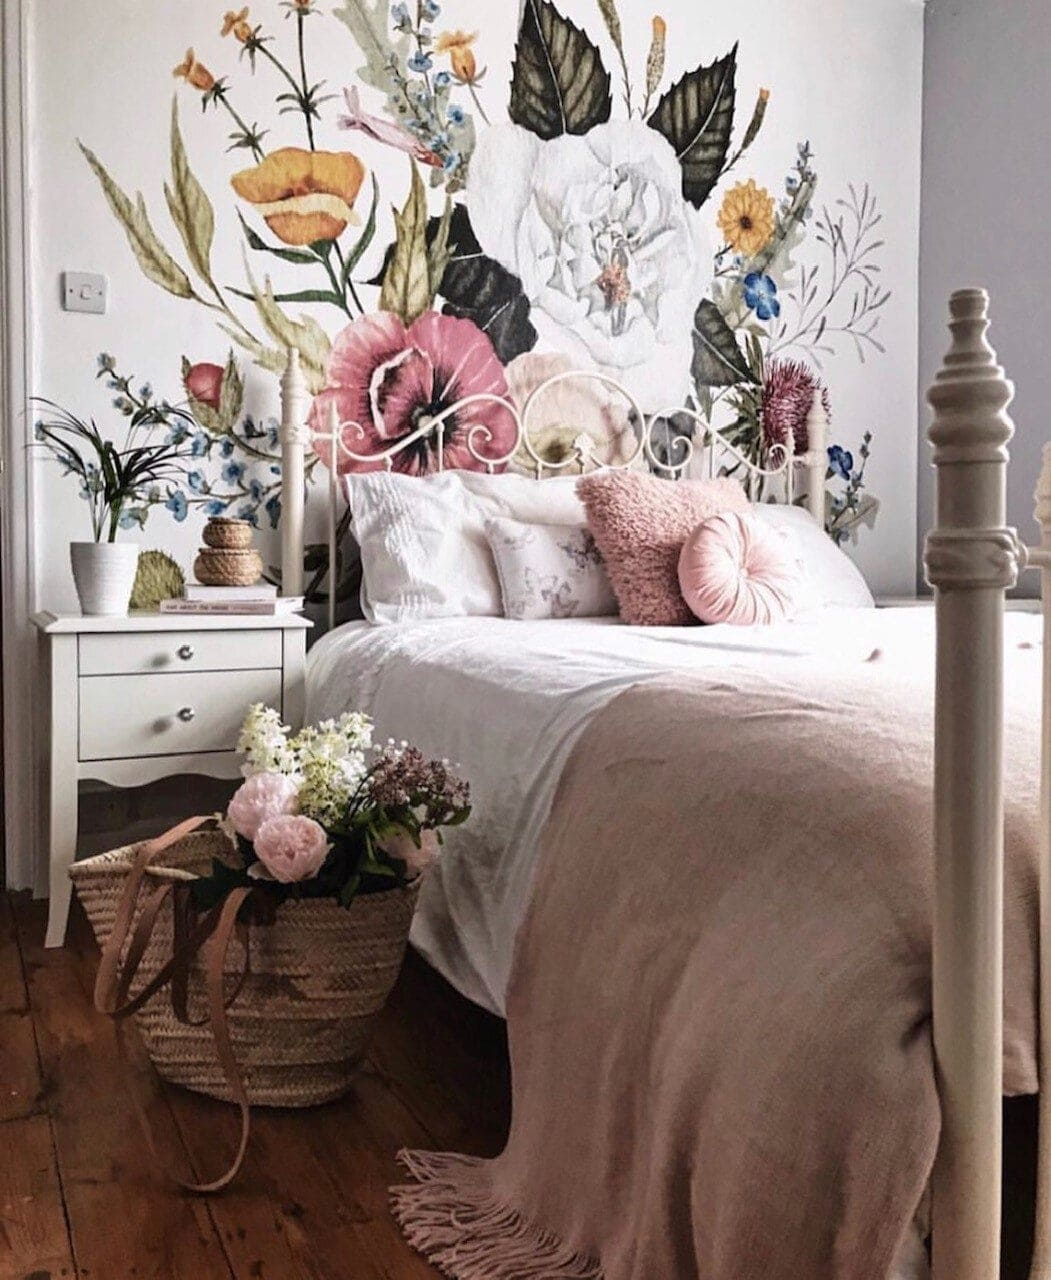 My fabulous wall mural from www.anewall.com introduced my first pink splashes in the house